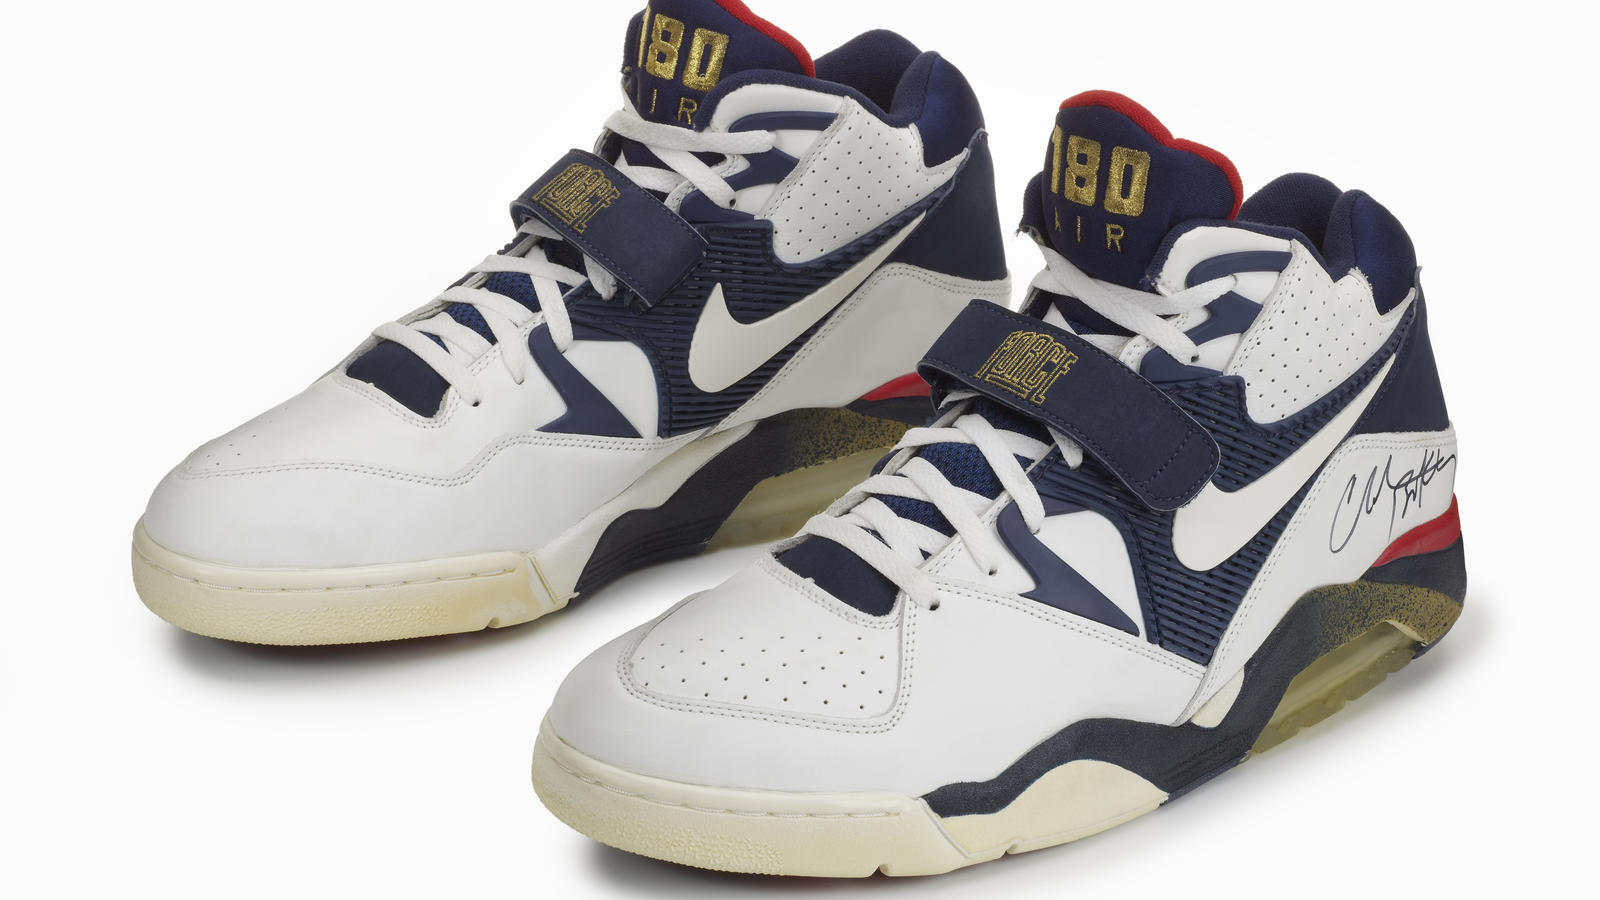 nike air force 180 low nike news. Black Bedroom Furniture Sets. Home Design Ideas